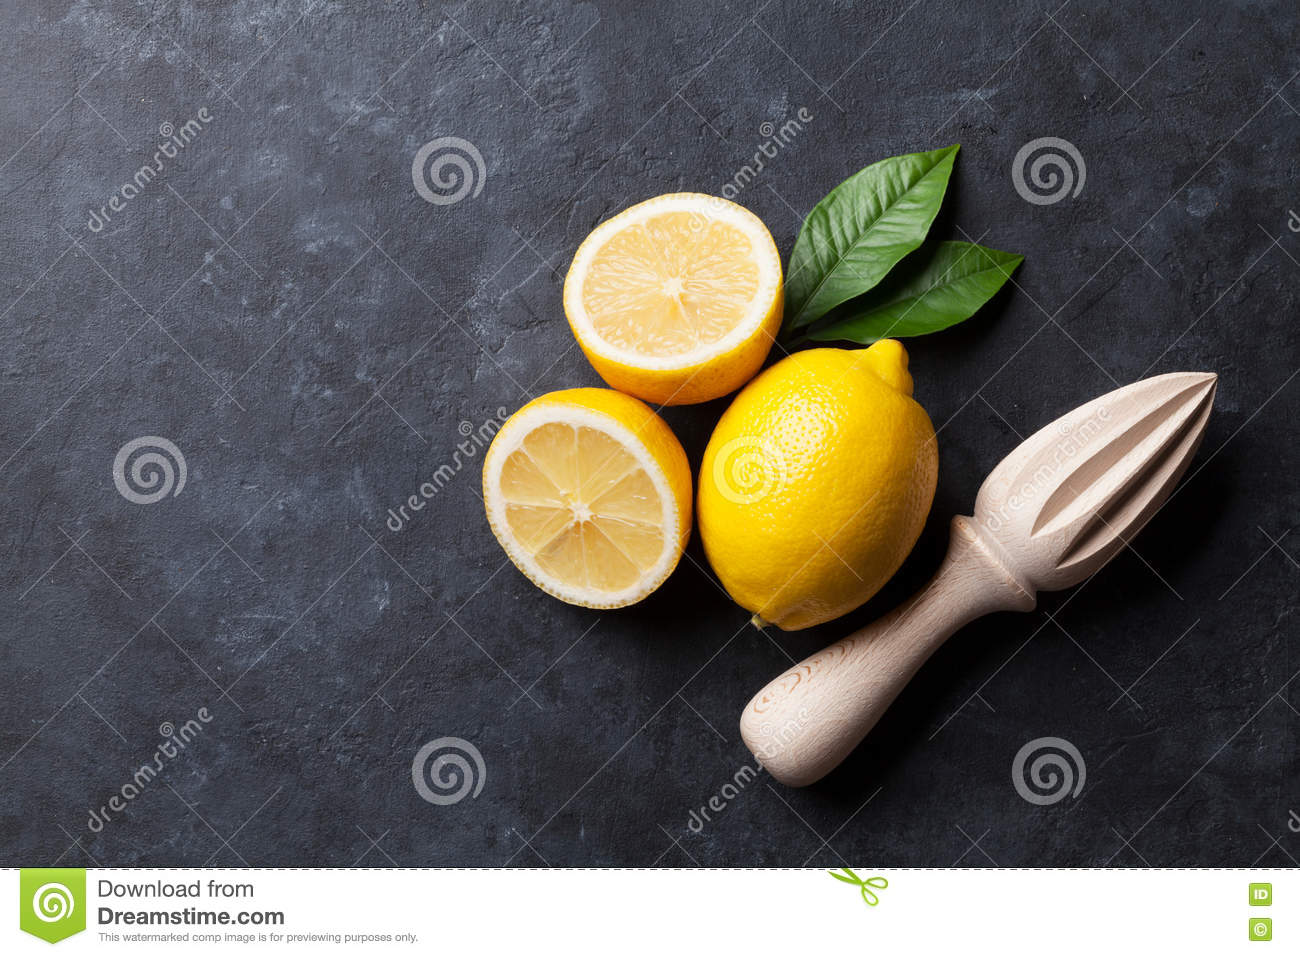 Citrons et presse-fruits